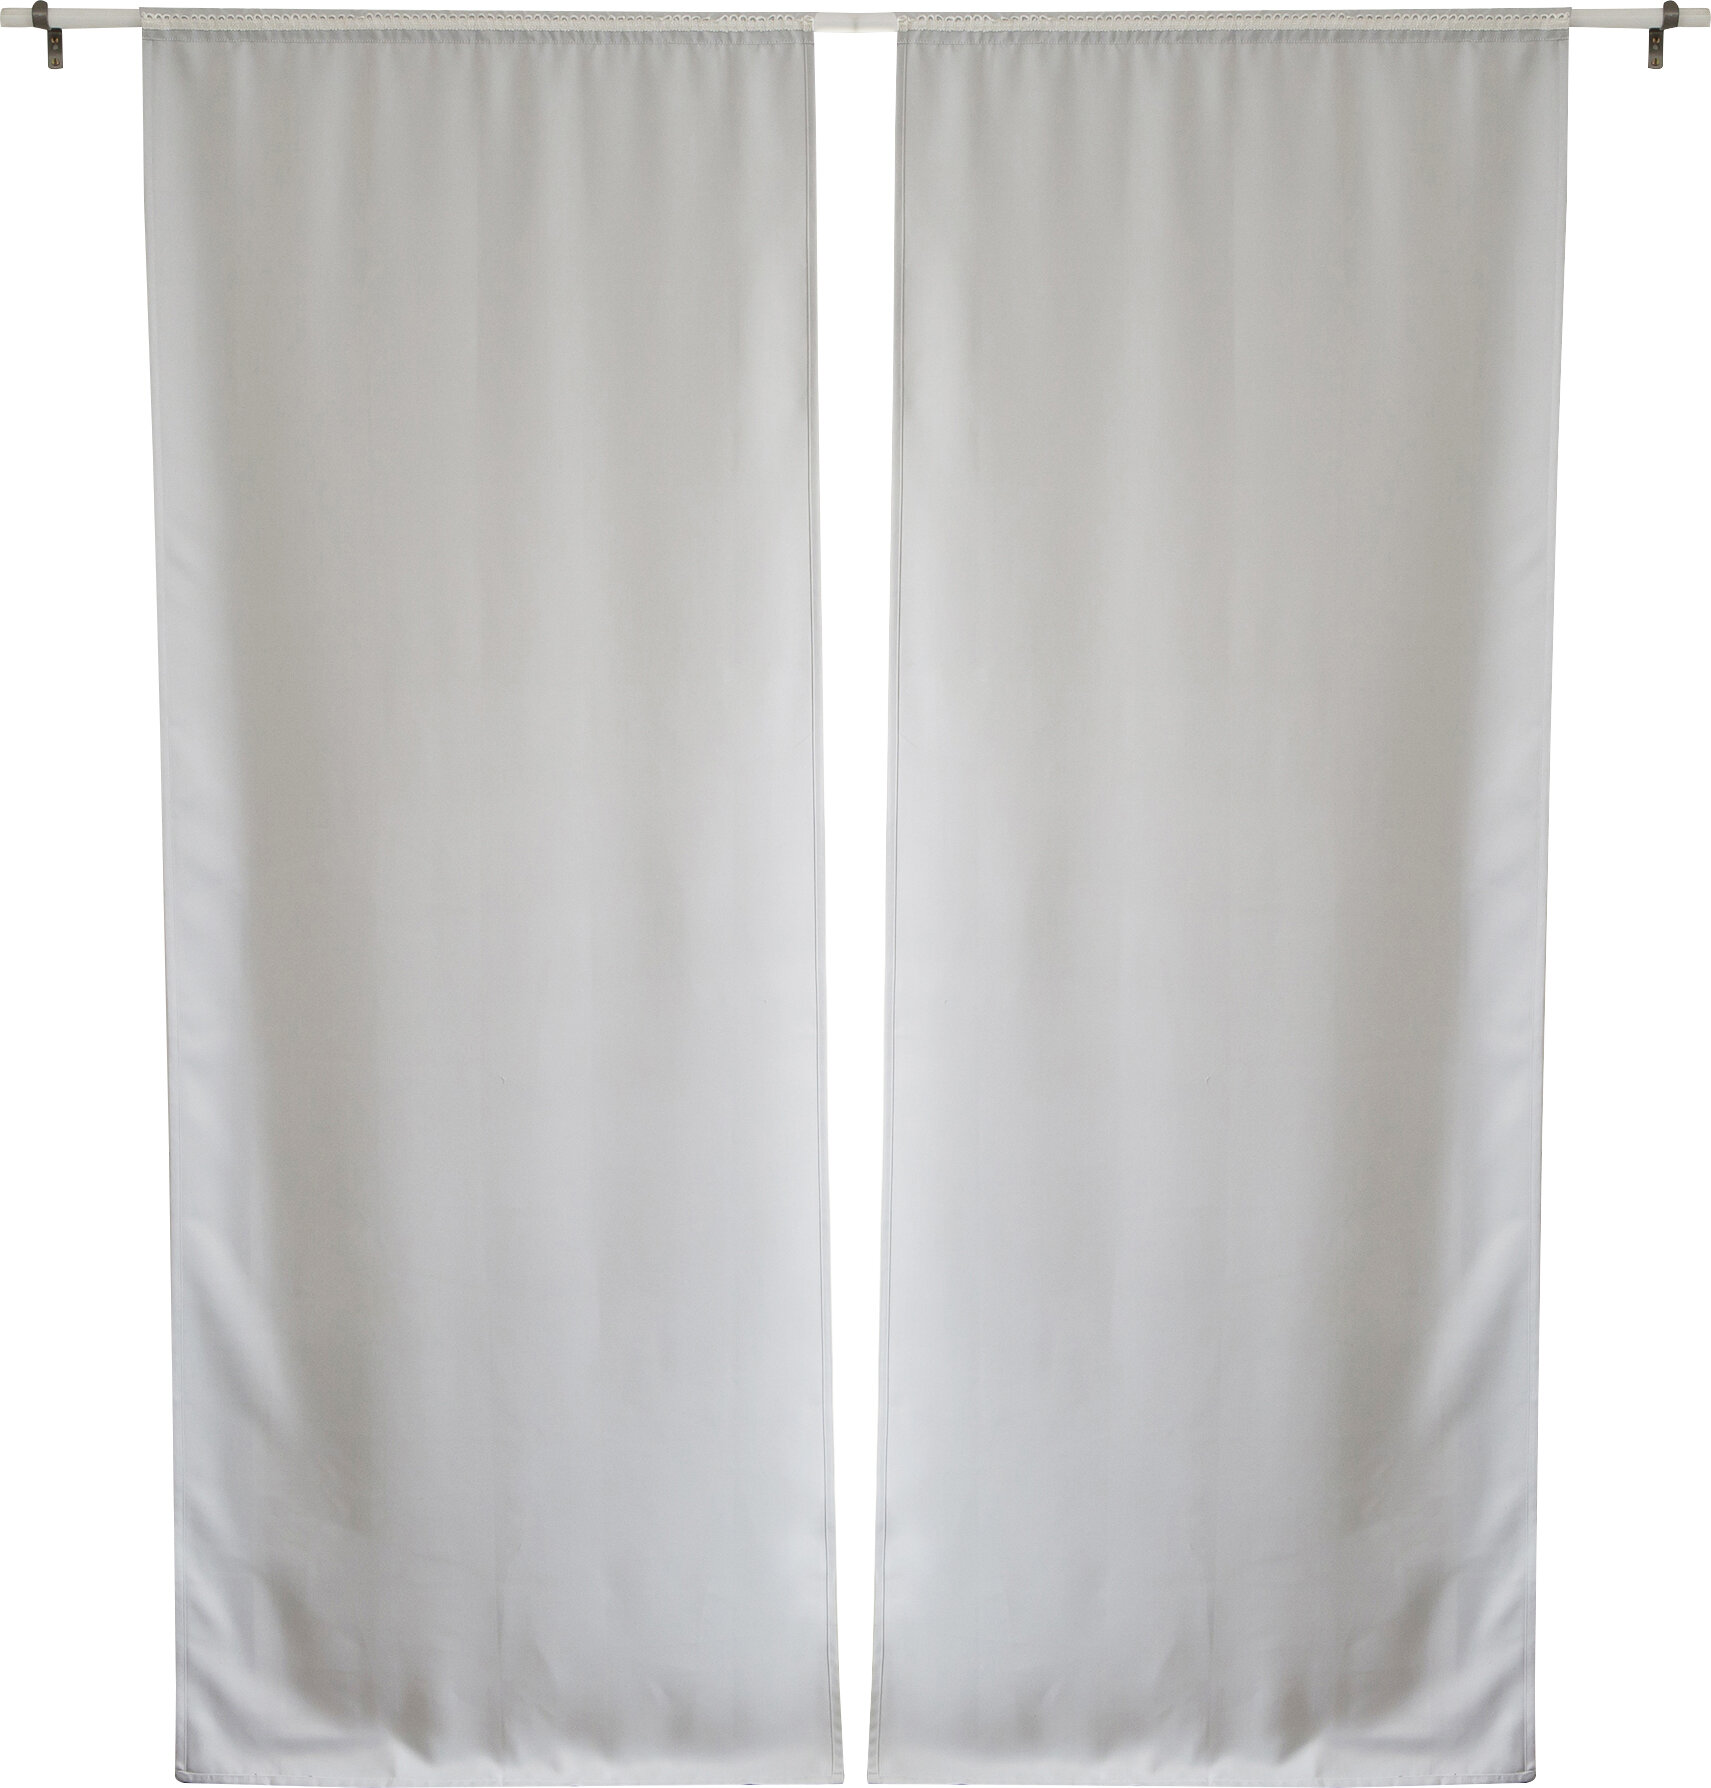 blackout fancy your and bath bedroom windows sale curtains beyond curtain interior applied decor rod bed room to window for liner drapes beyon pocket panels living drape